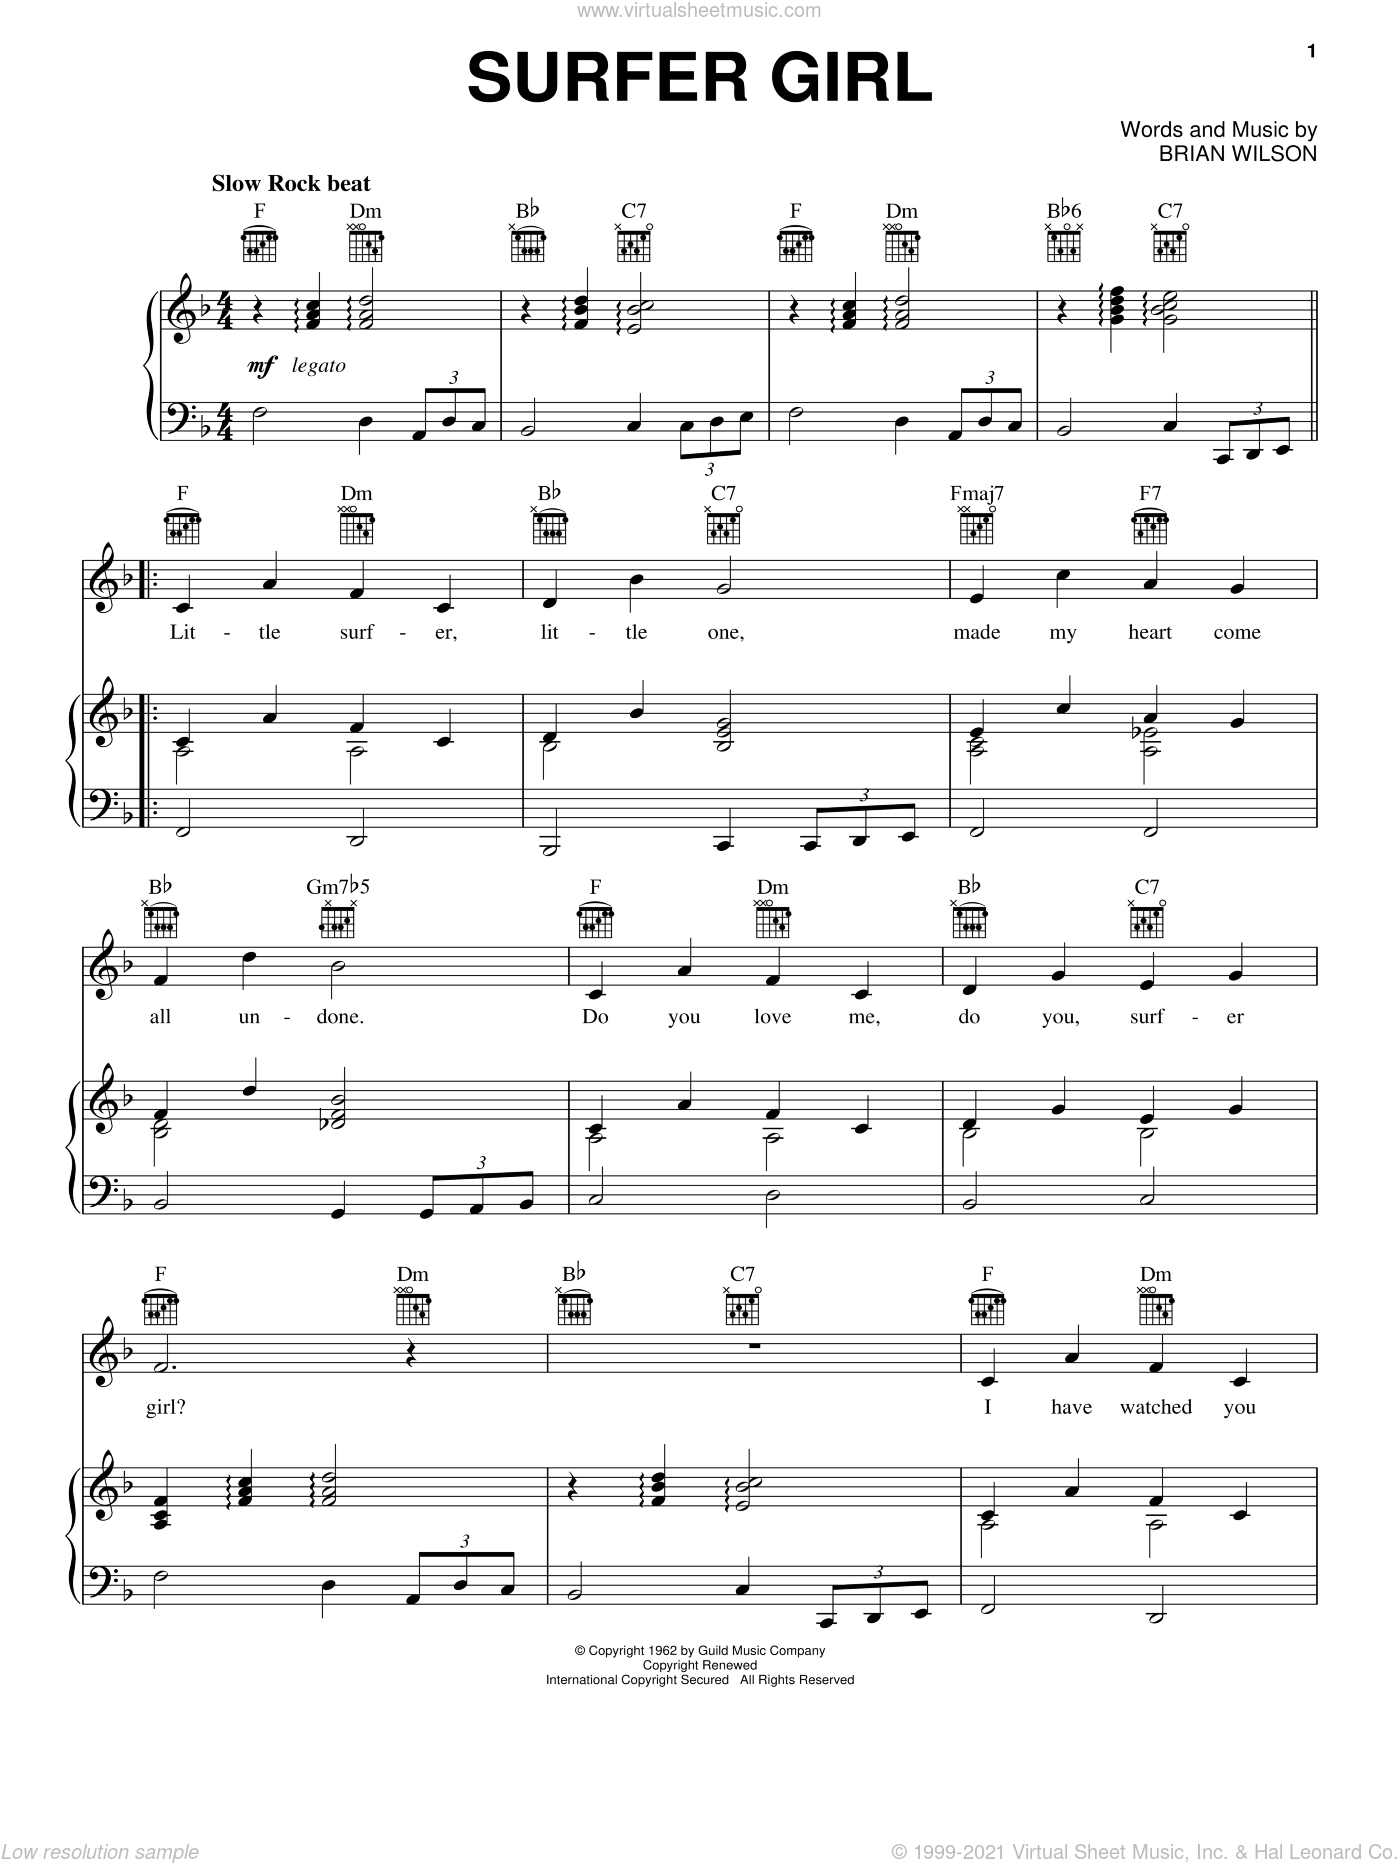 Surfer Girl sheet music for voice, piano or guitar by The Beach Boys and Brian Wilson, intermediate skill level